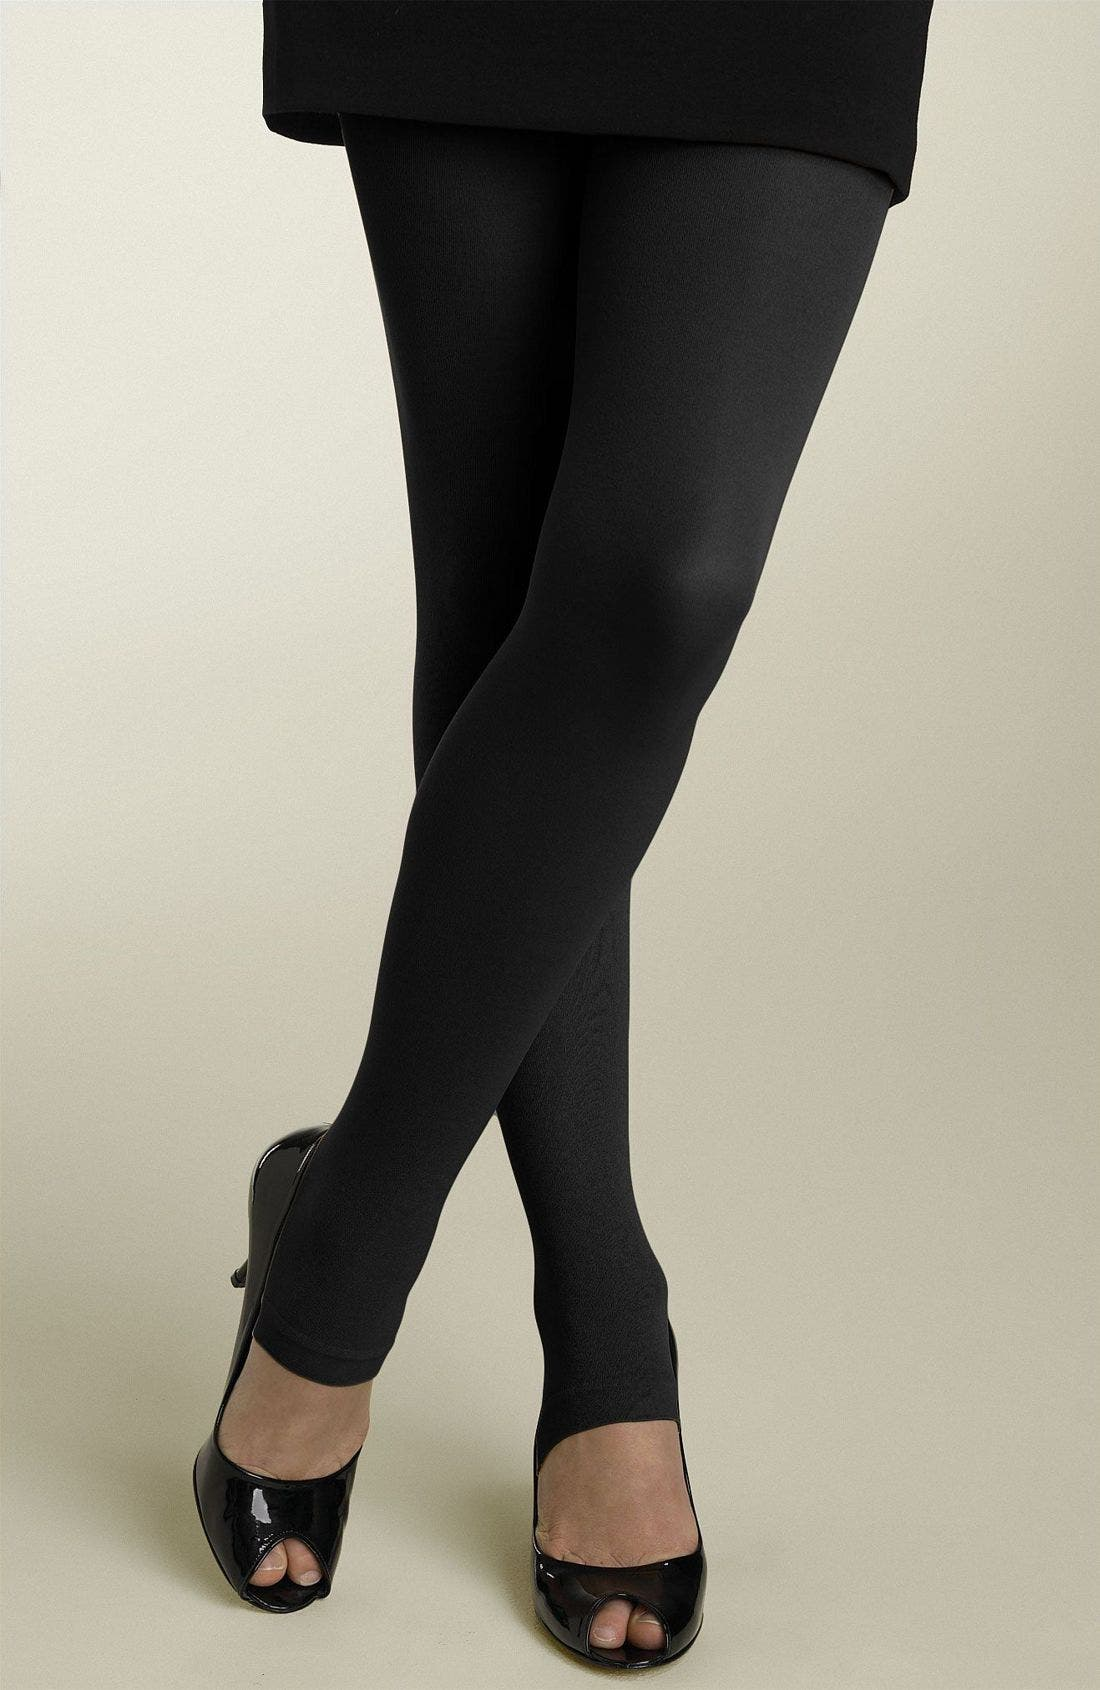 Alternate Image 1 Selected - Nordstrom Footless Tights